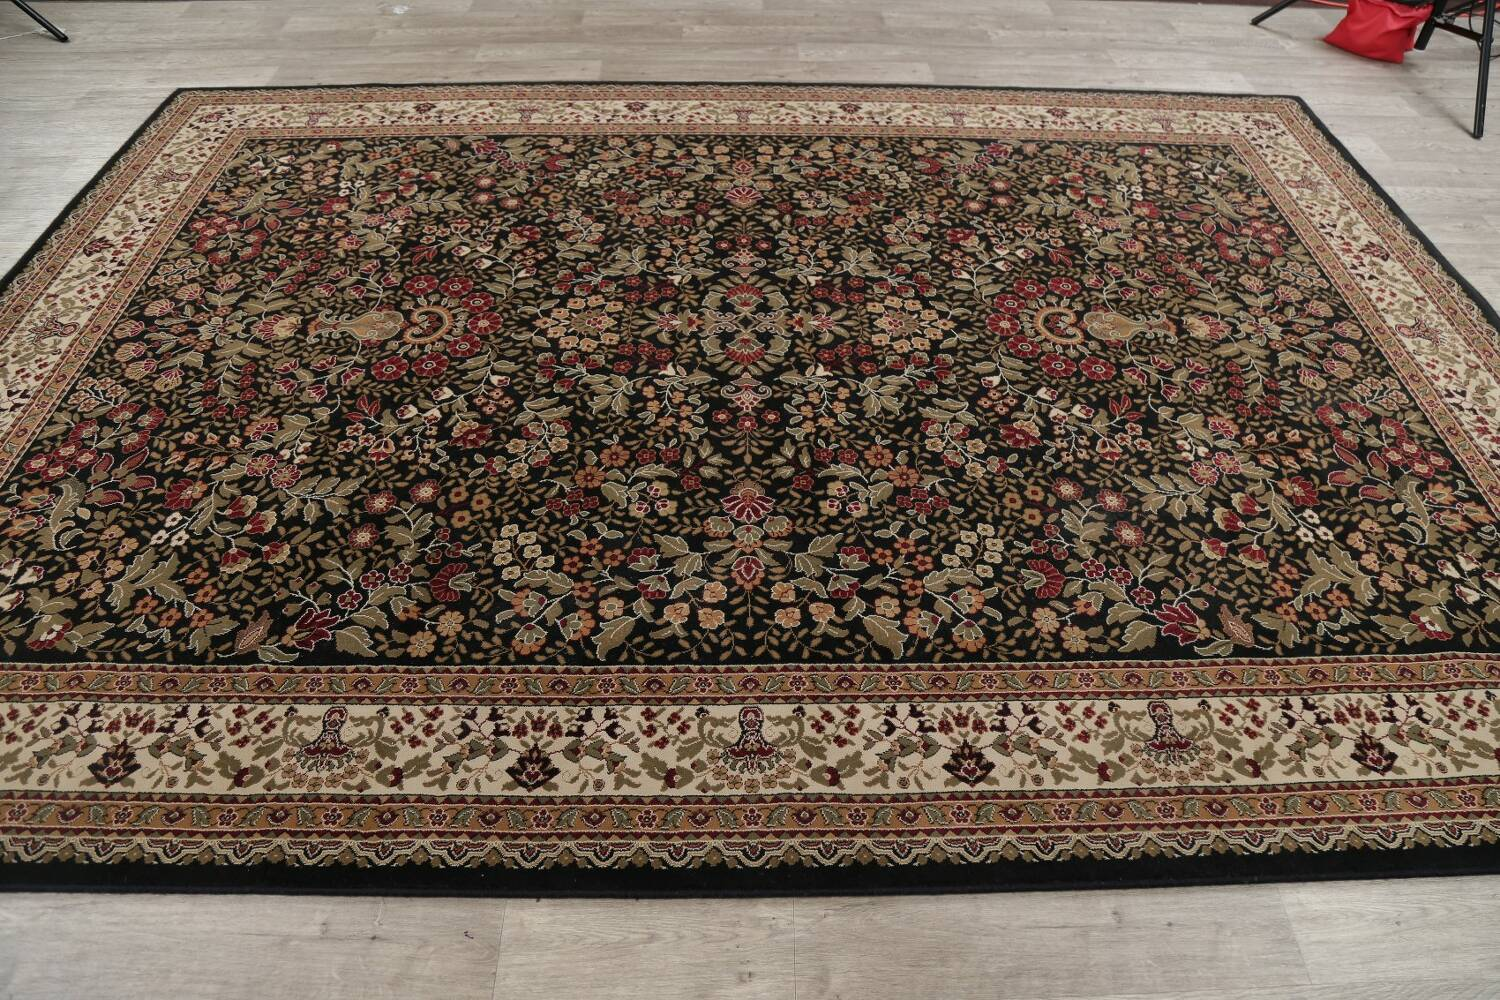 All-Over Floral Agra Turkish Area Rugs image 26